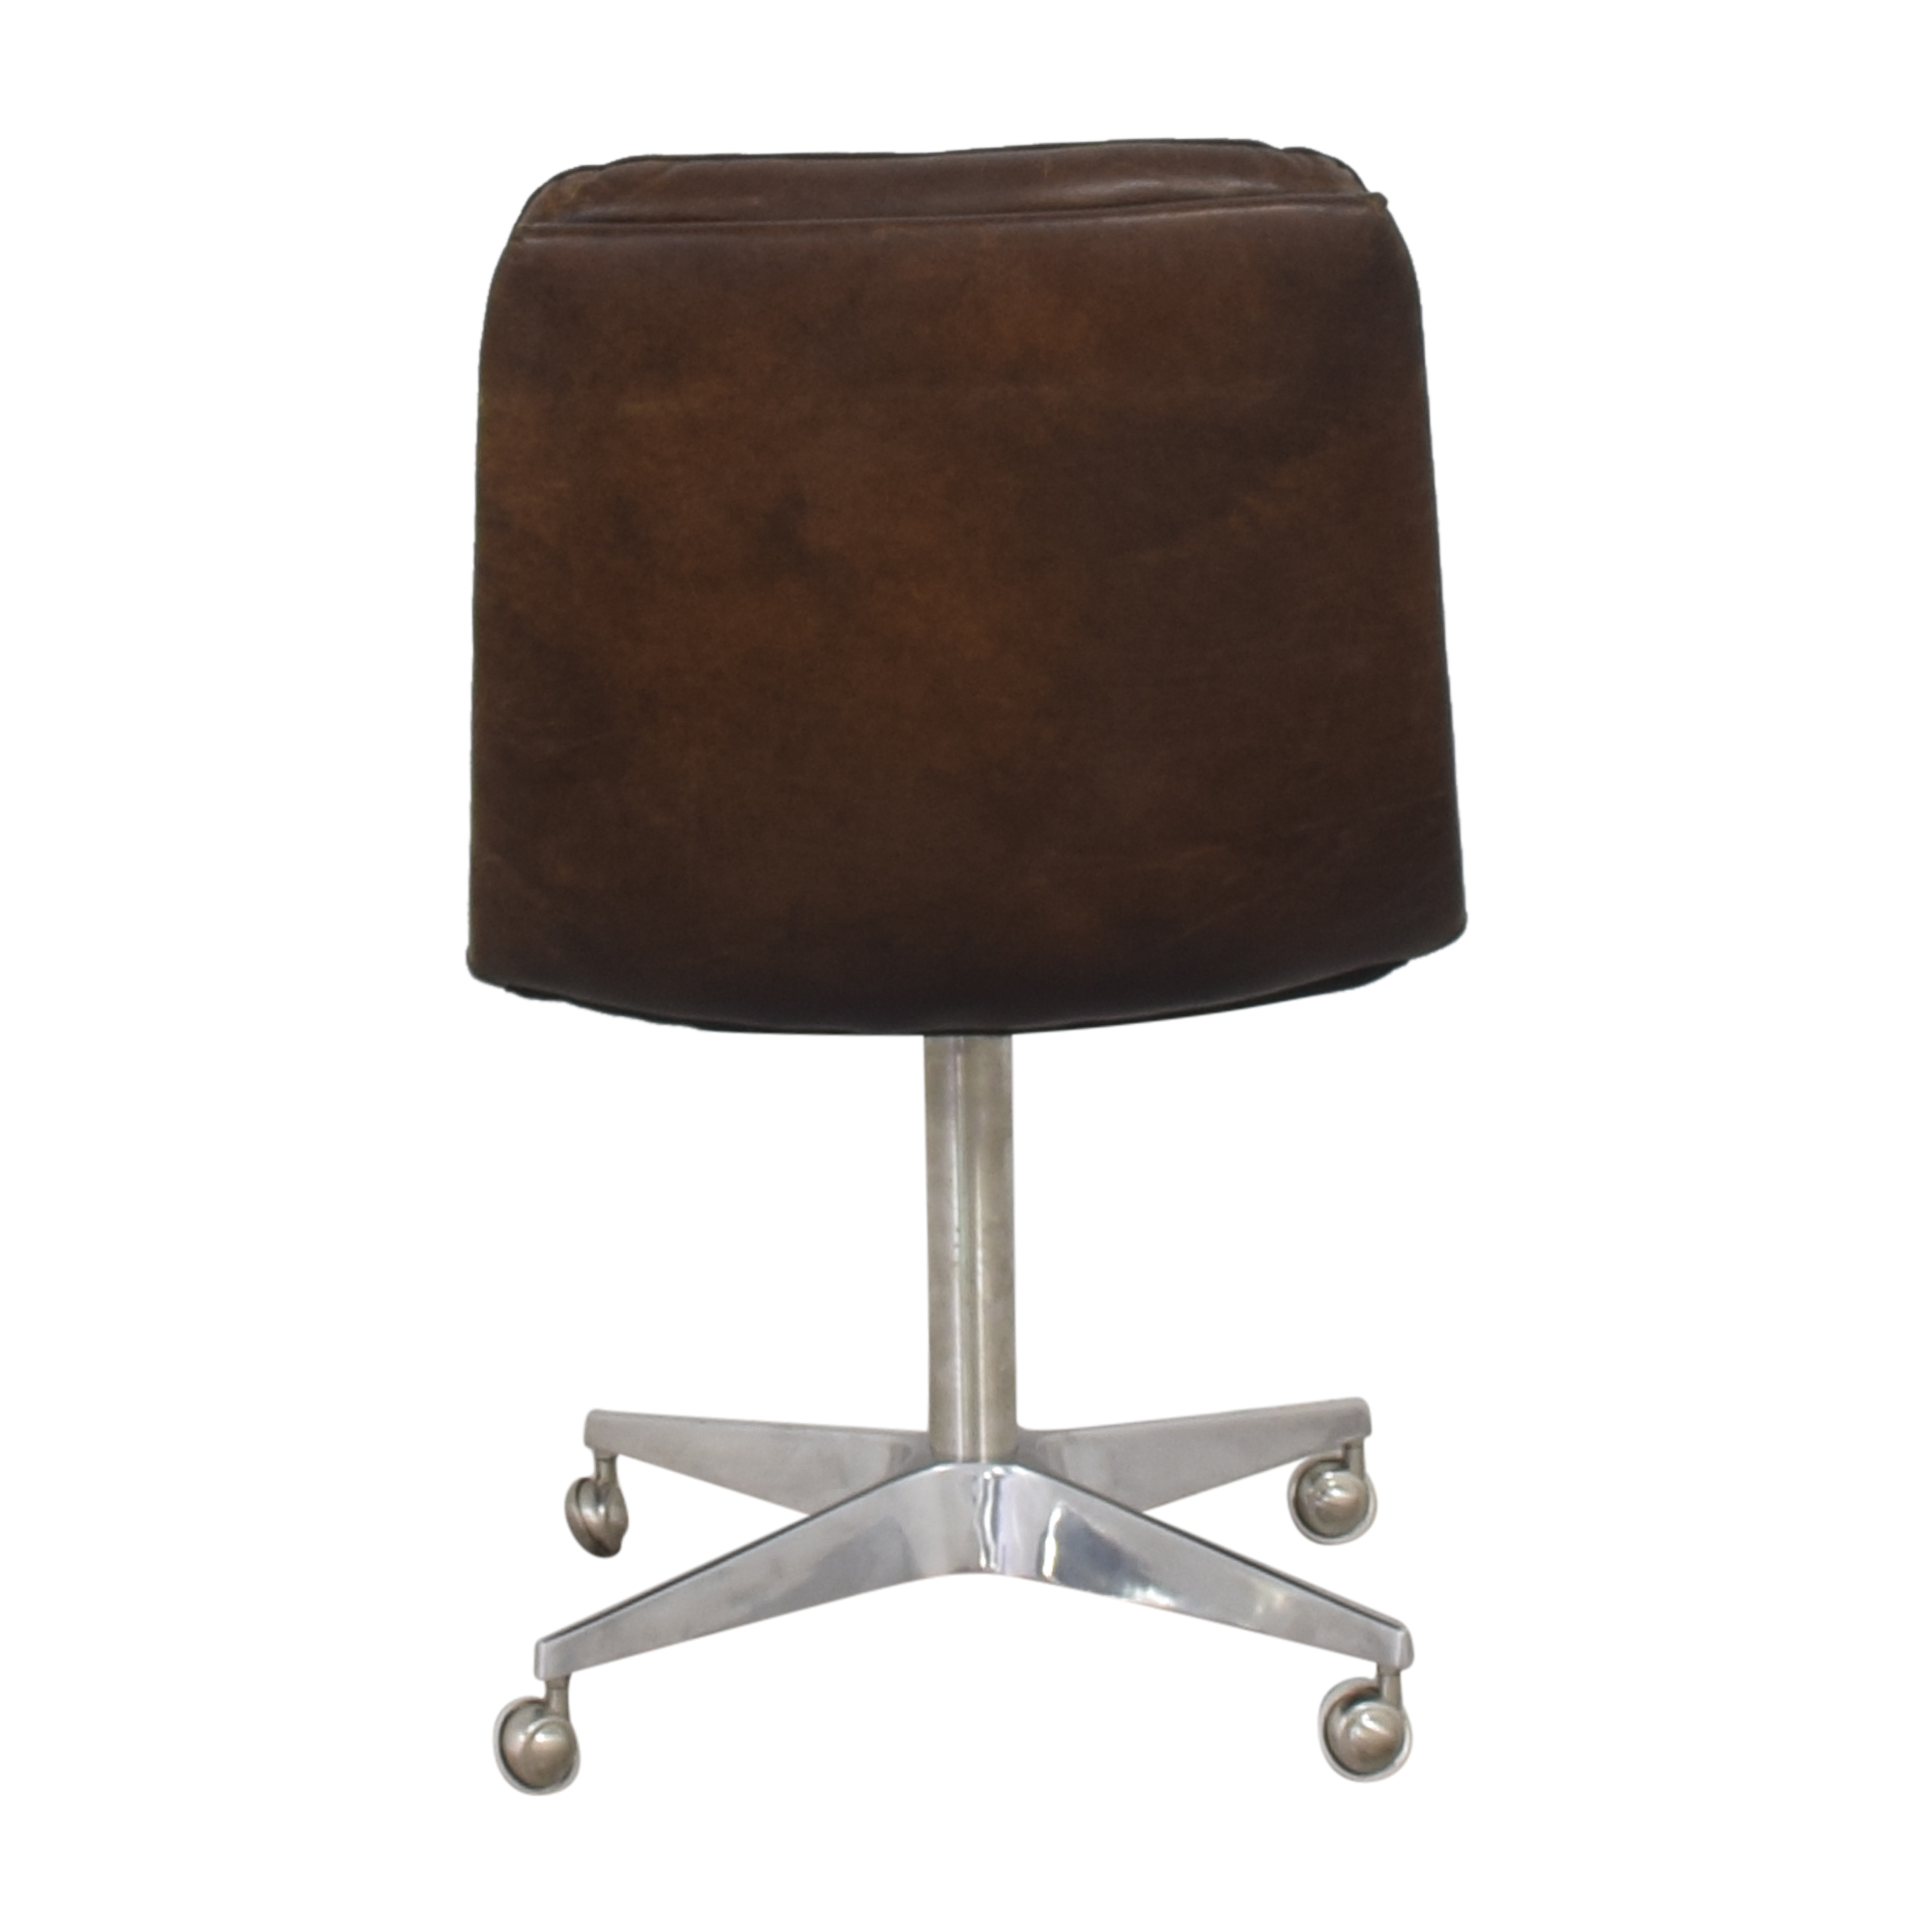 Restoration Hardware Restoration Hardware Griffith Desk Chair  Home Office Chairs